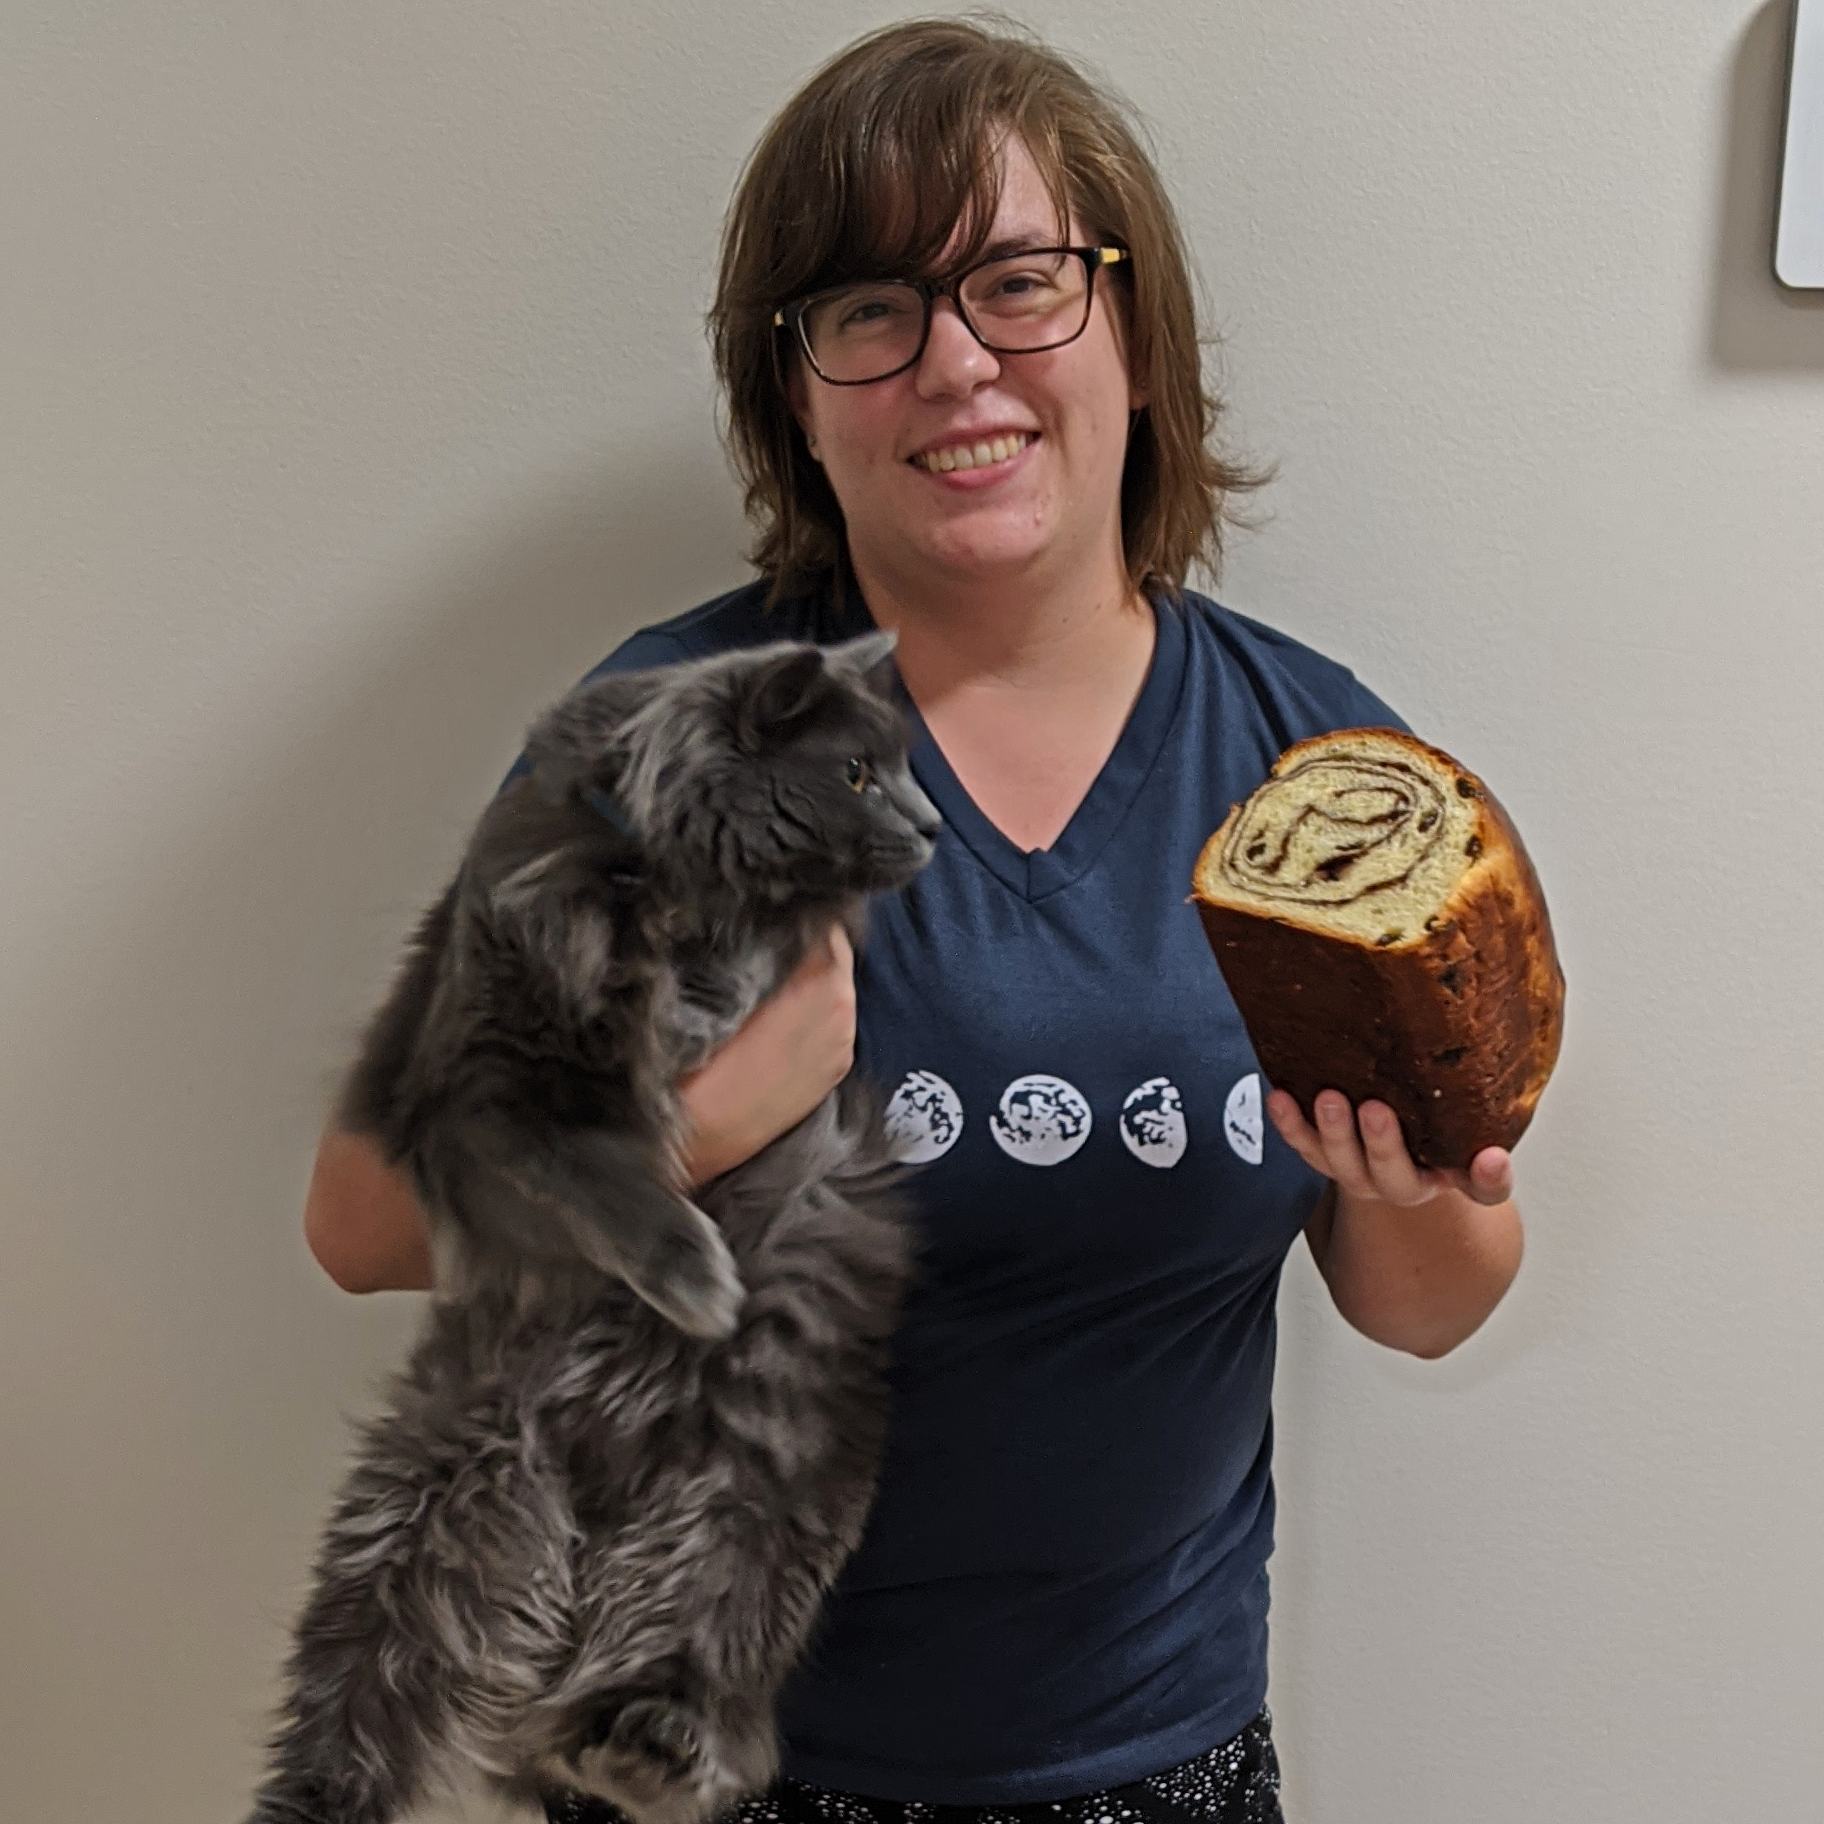 Gina Phipps holding loaf of bread and cat